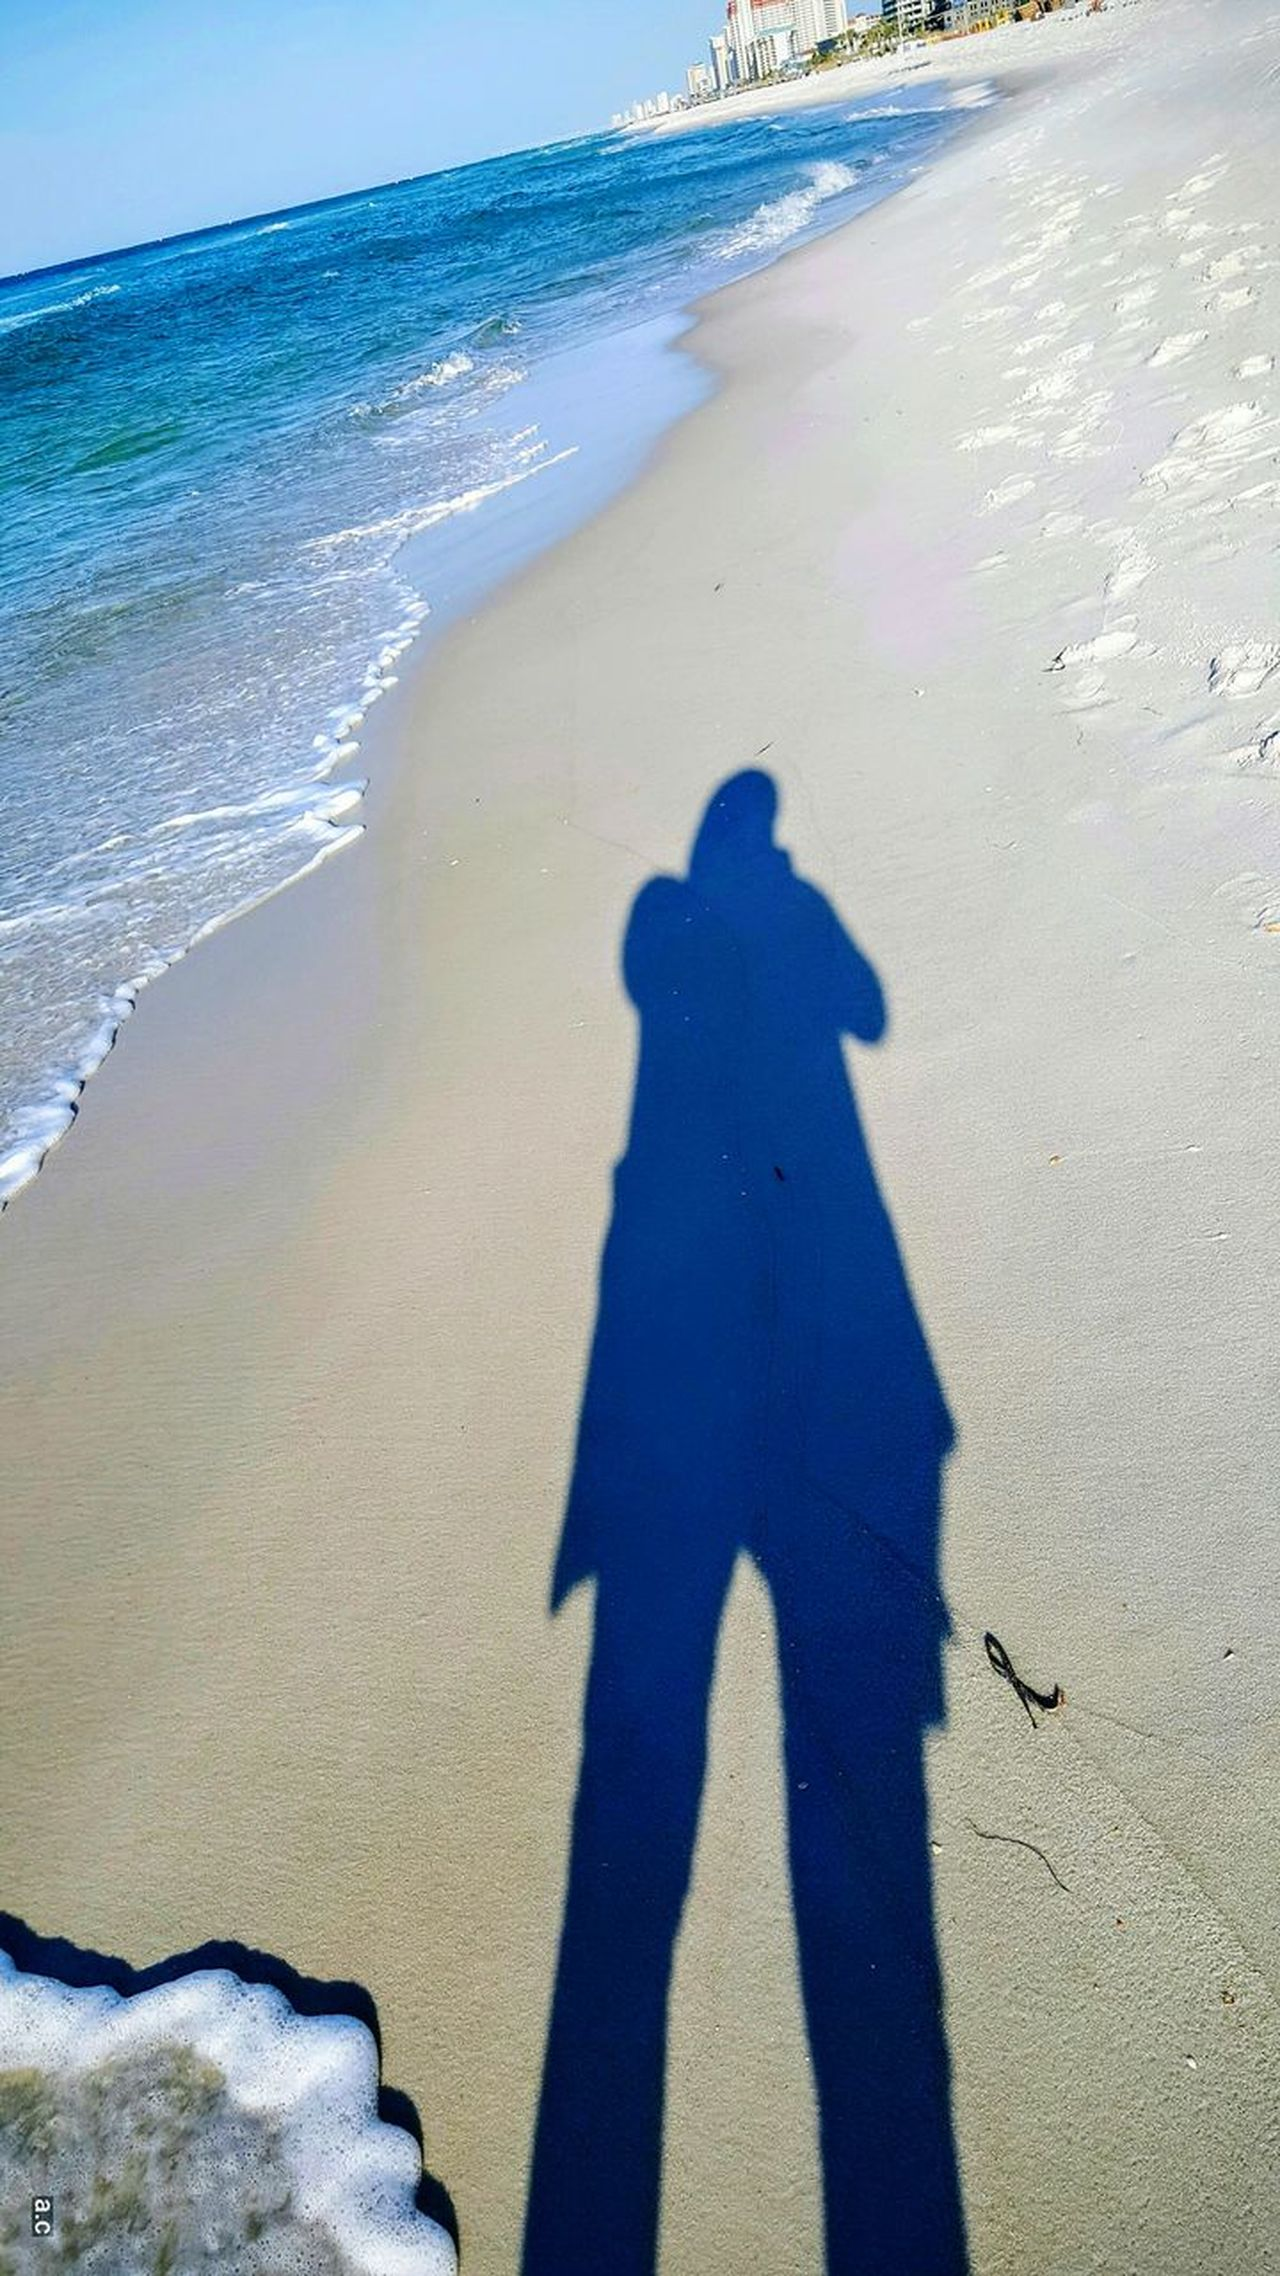 Beach Sea Shadow Sand Focus On Shadow Real People Sunlight Lifestyles Water Men Outdoors High Angle View Day Leisure Activity One Person Wave Nature Motion Only Men Adults Only